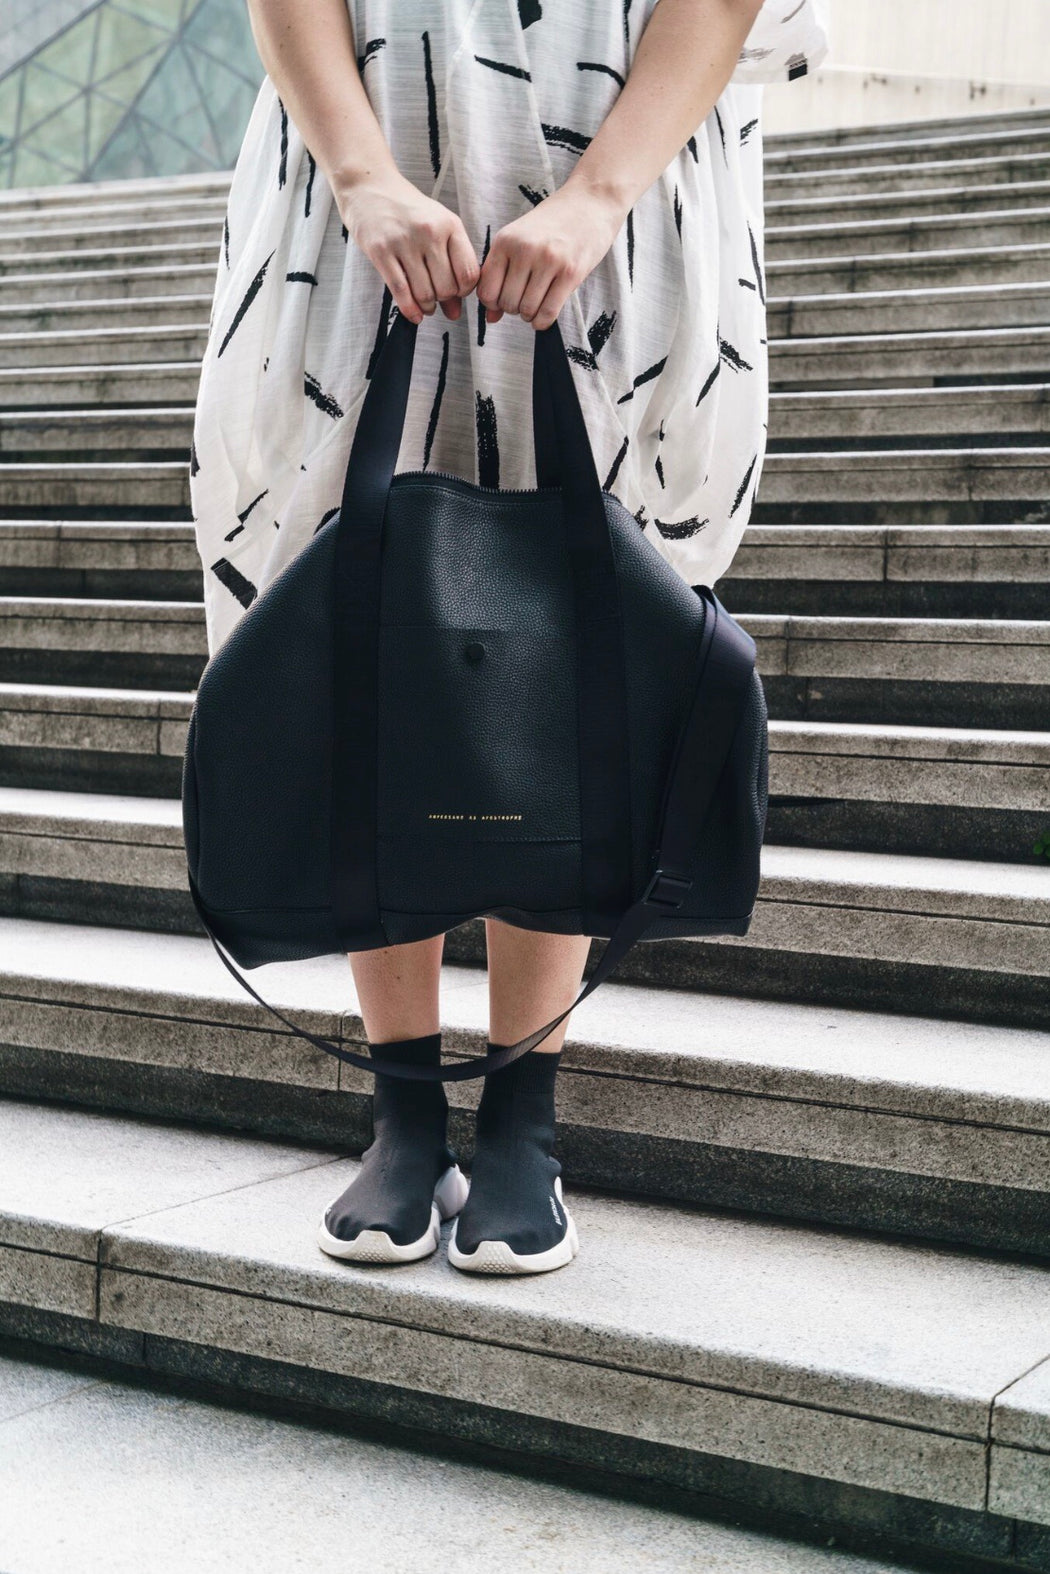 The O.G. Duffle / Black Lux